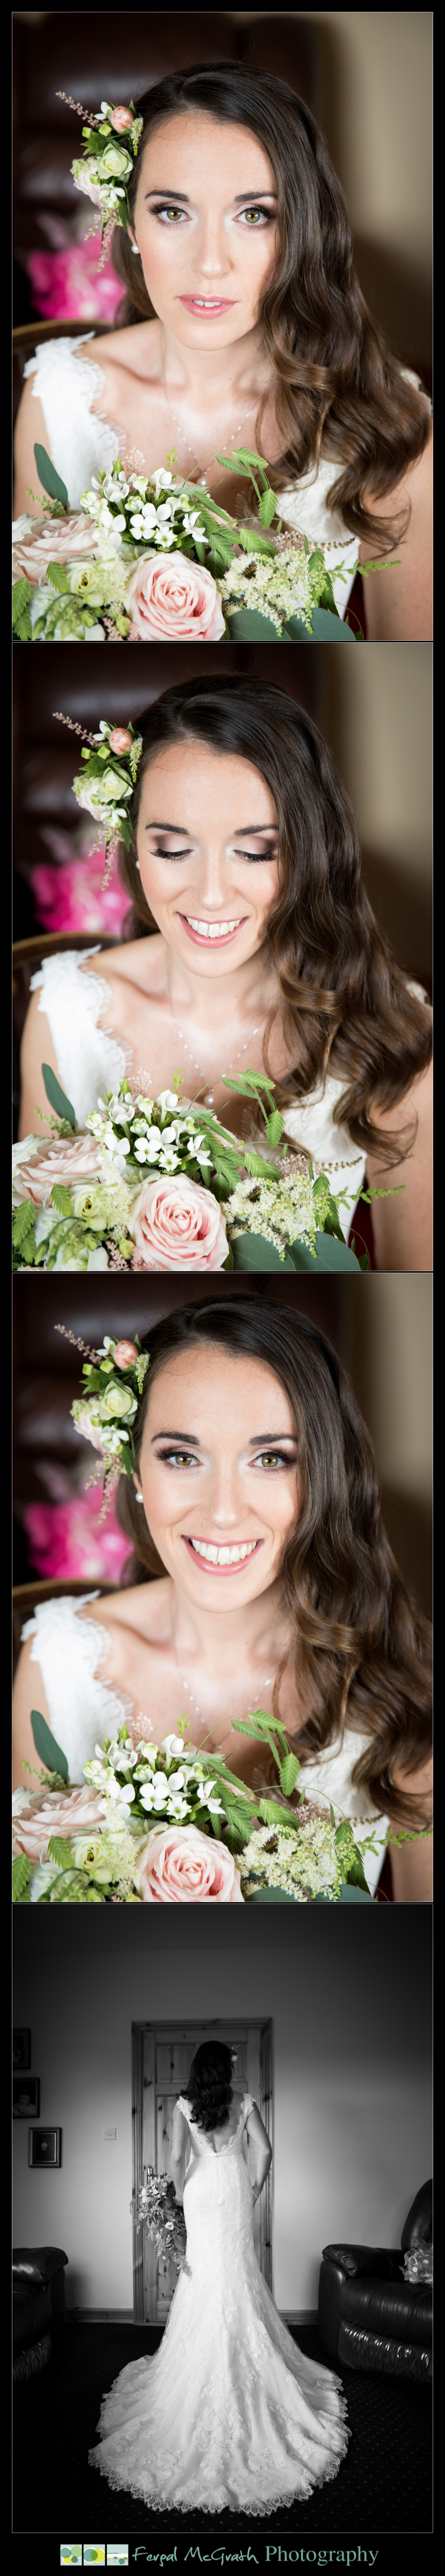 Castle Dargan Hotel Summer Wedding stunning sligo brides portraits